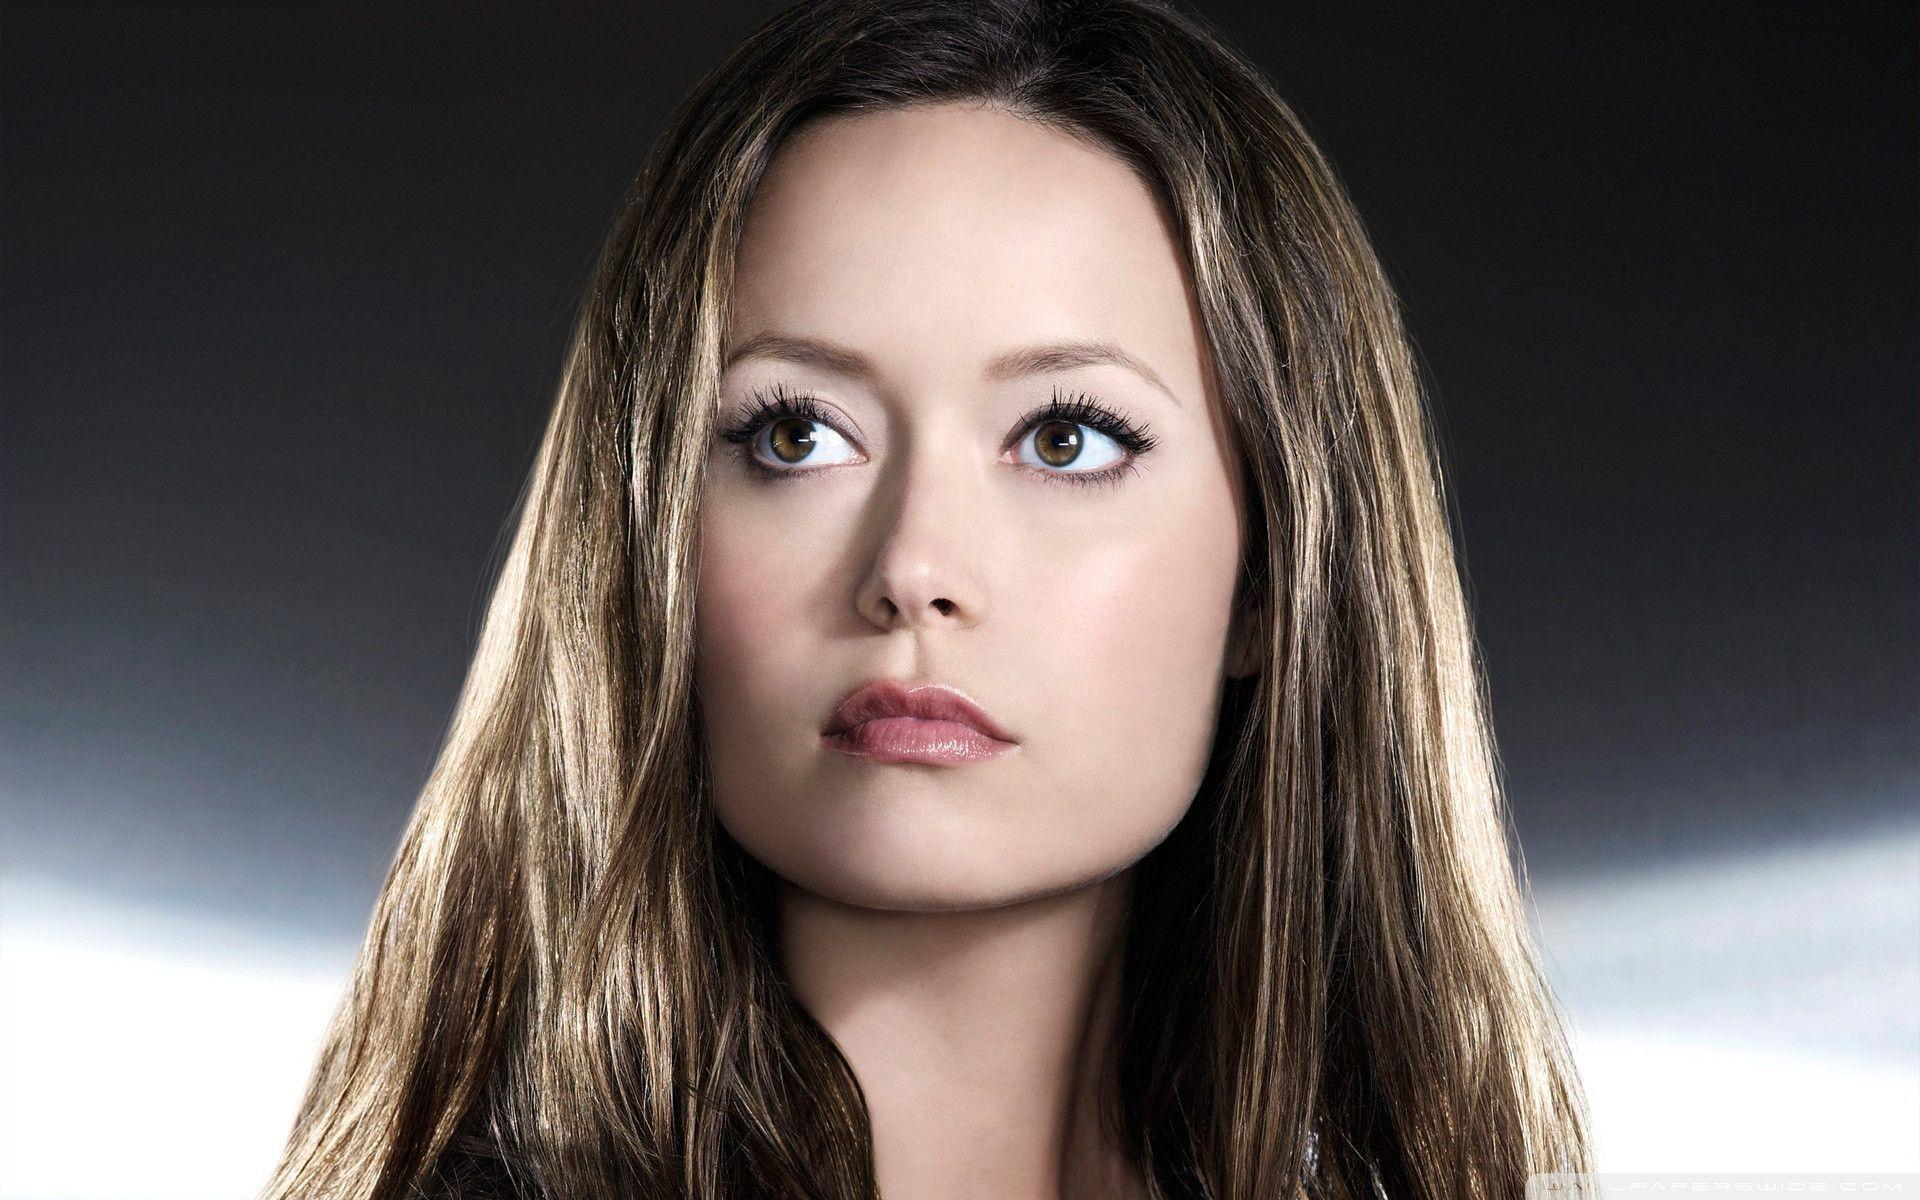 Summer Glau Terminator Wallpapers - Wallpaper Cave